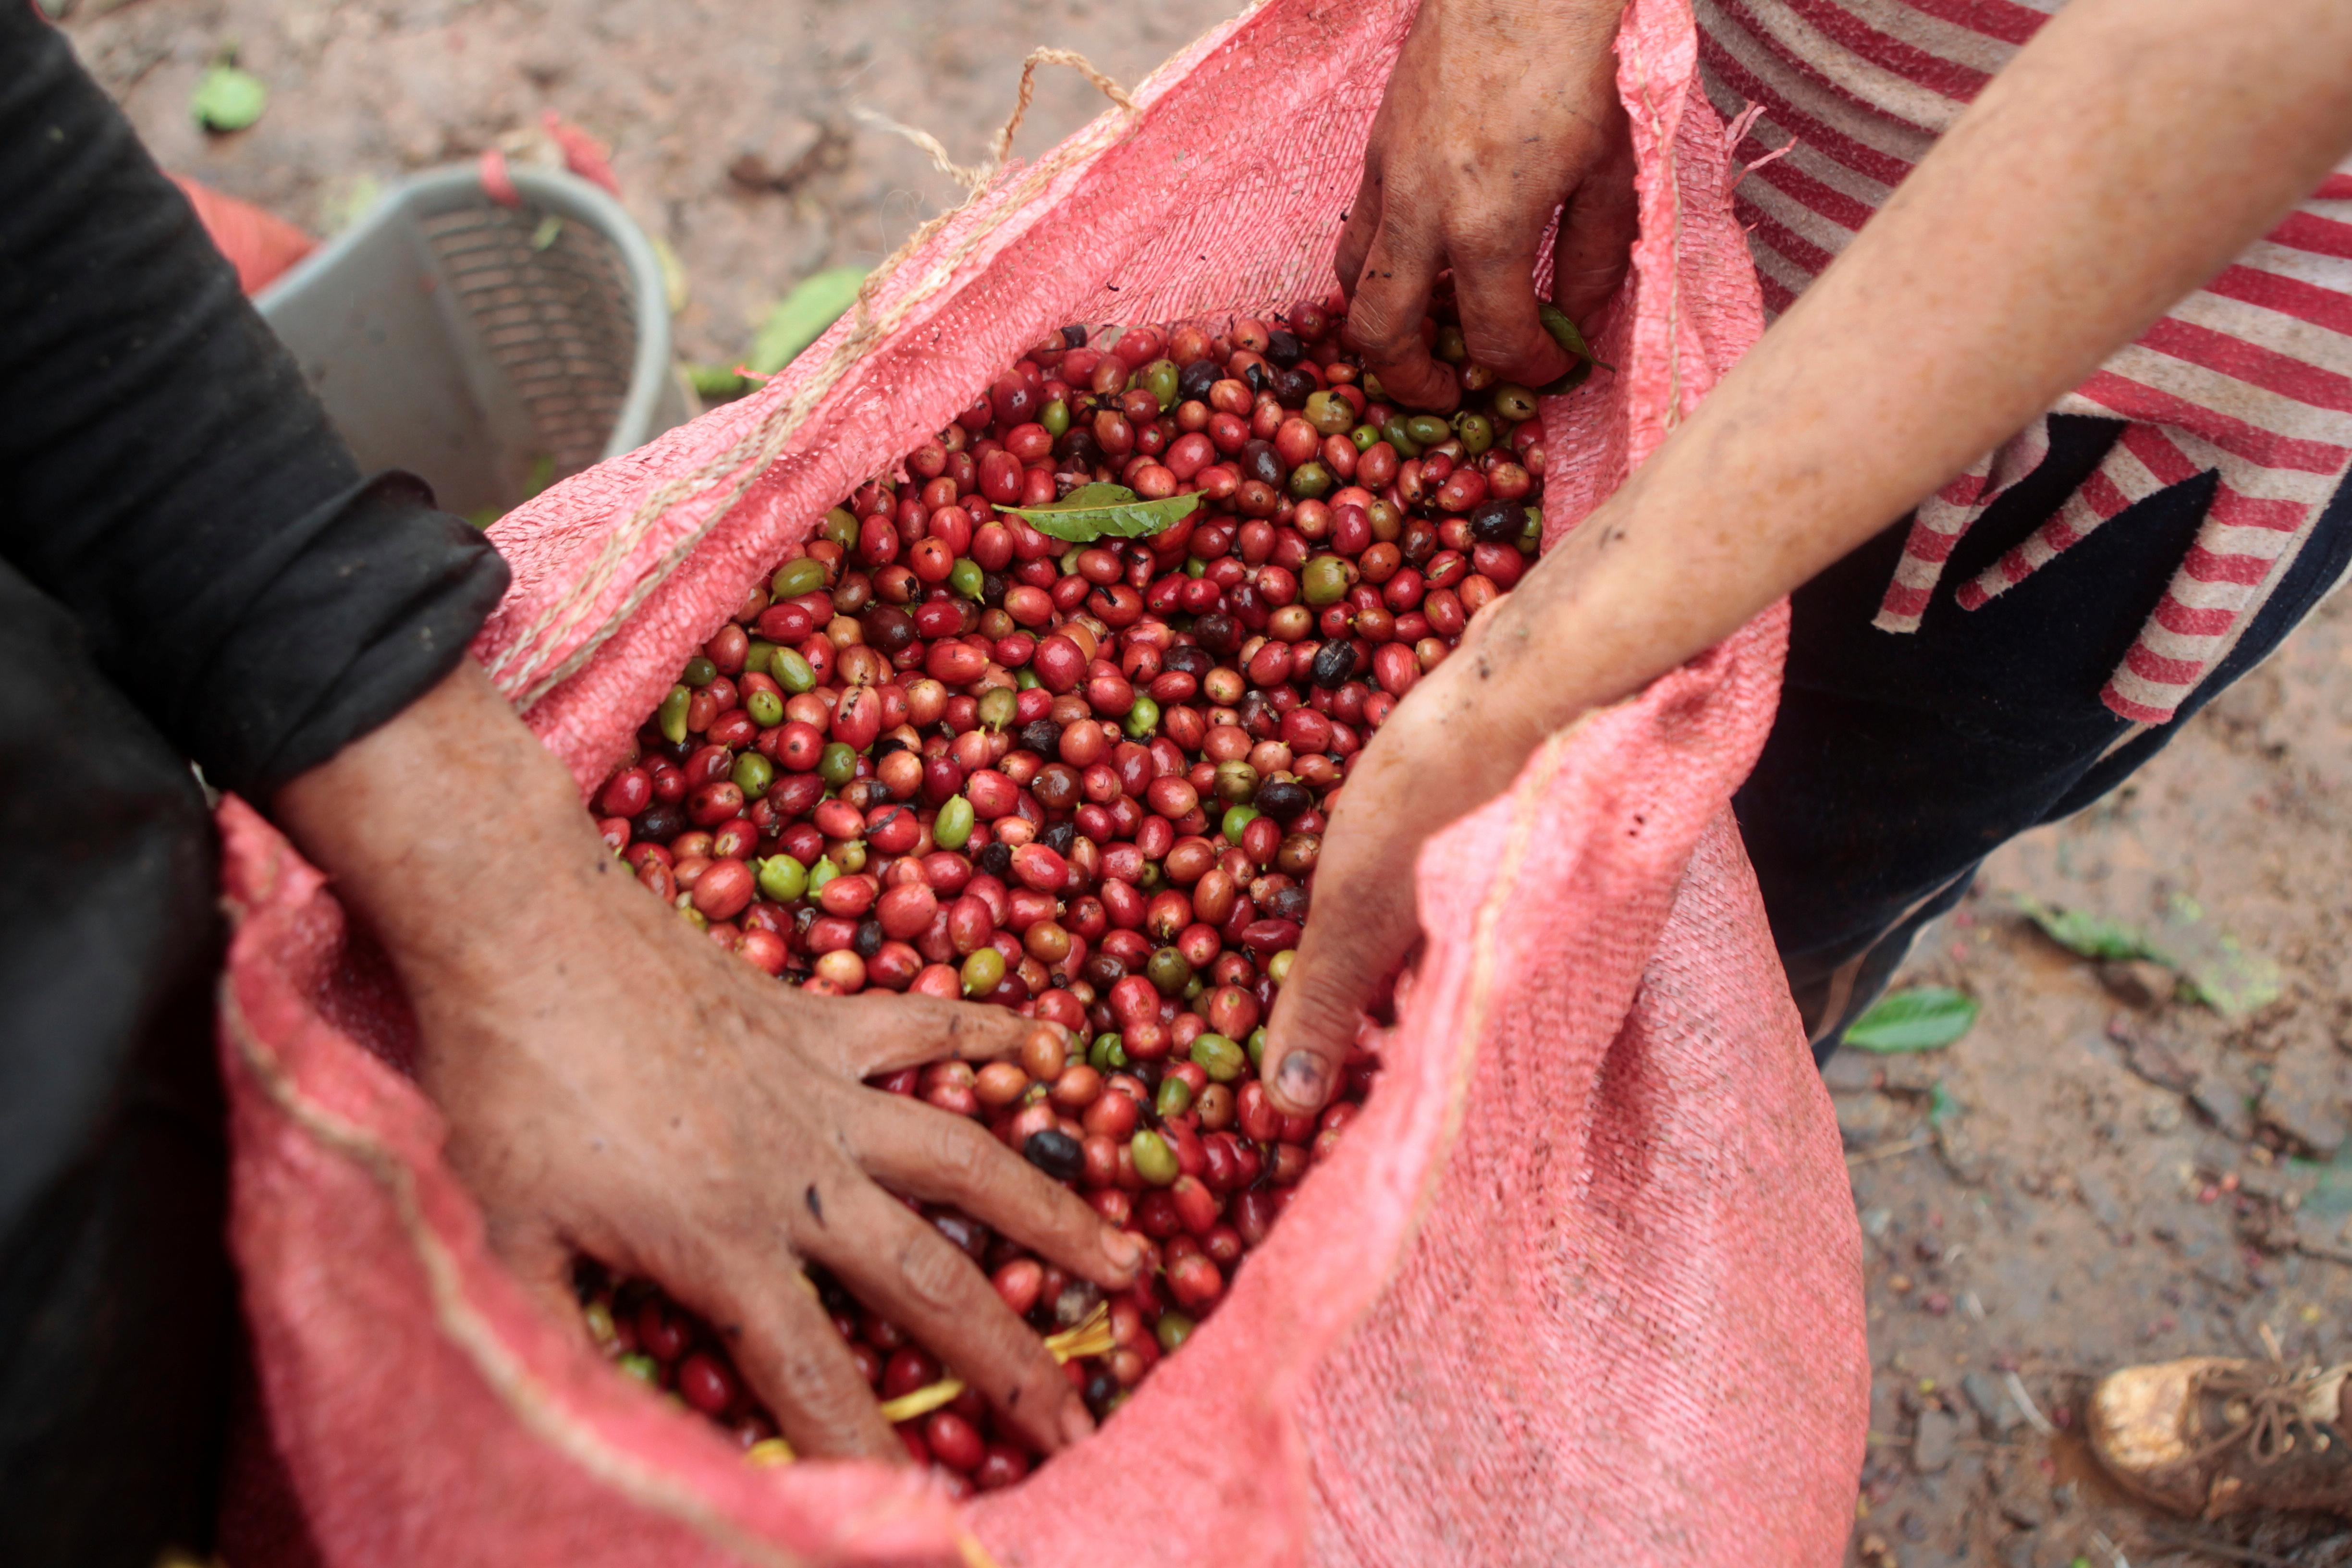 Latin America's premium coffee growers branch out to cheaper beans